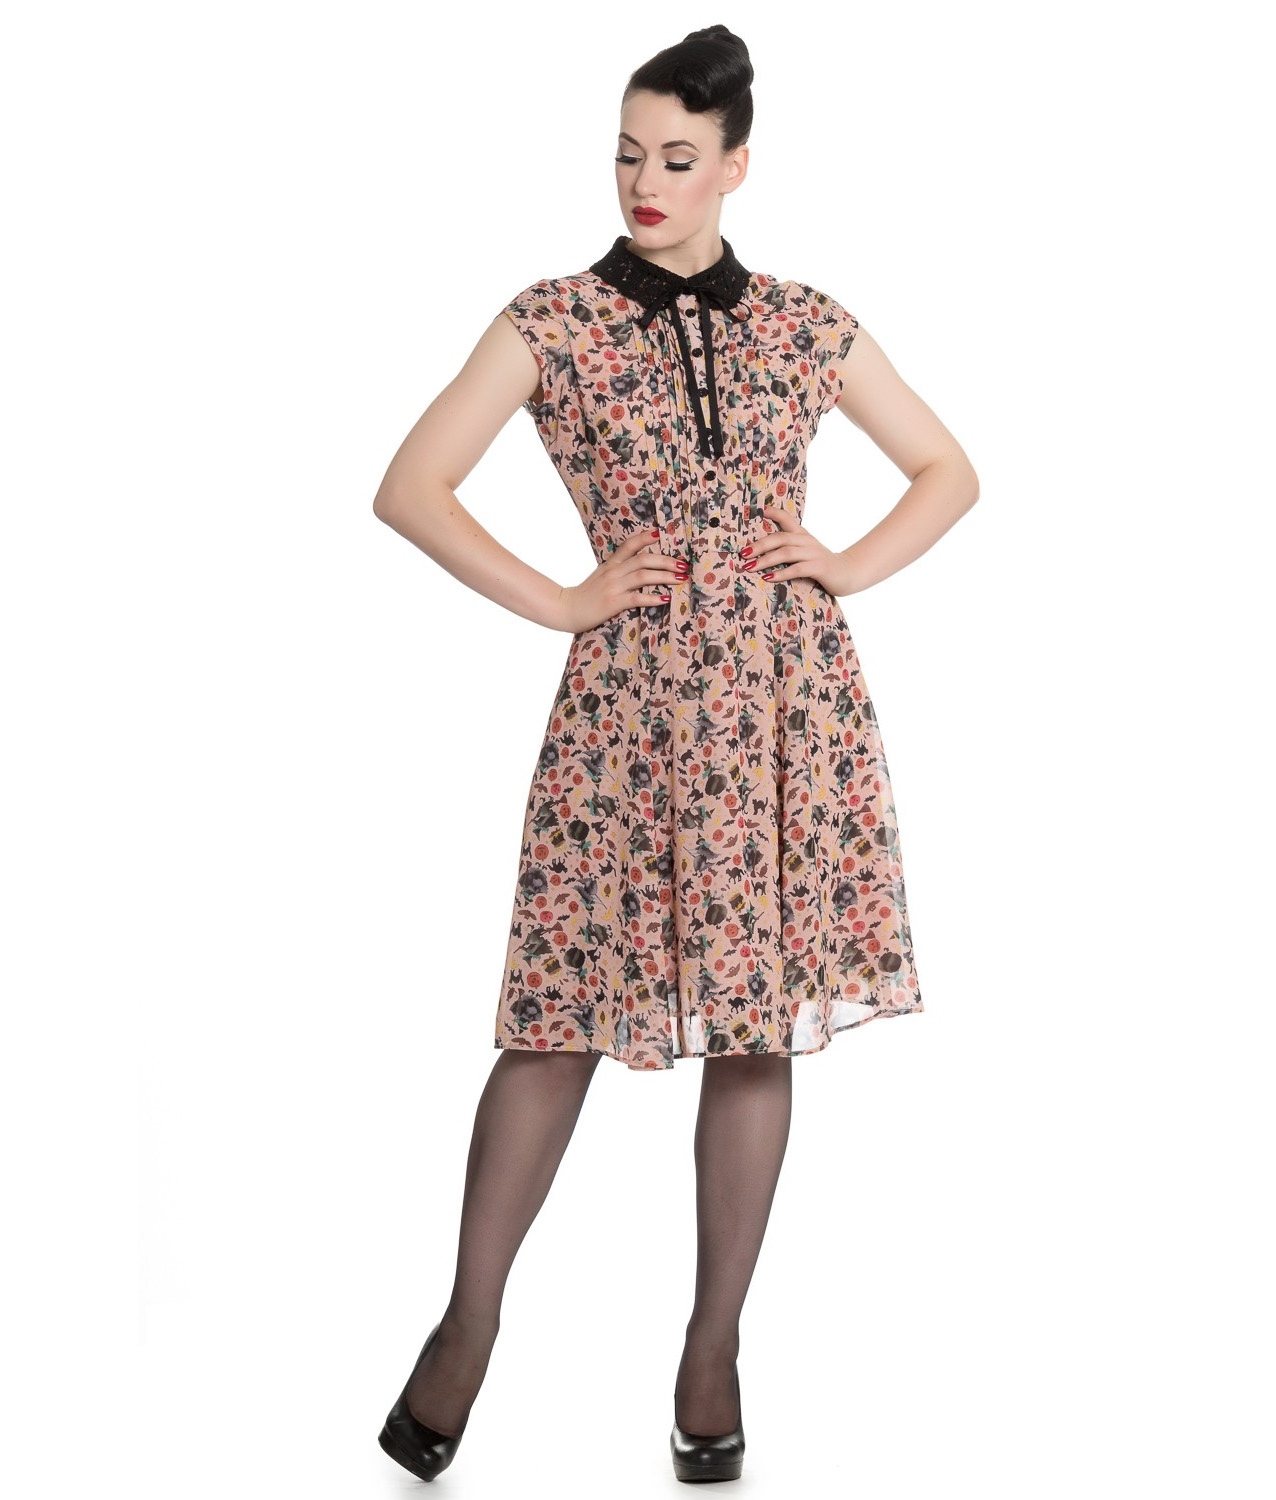 Hell-Bunny-Gothic-40s-50s-Beige-Dress-ZELDA-Witchy-Halloween-All-Sizes thumbnail 11